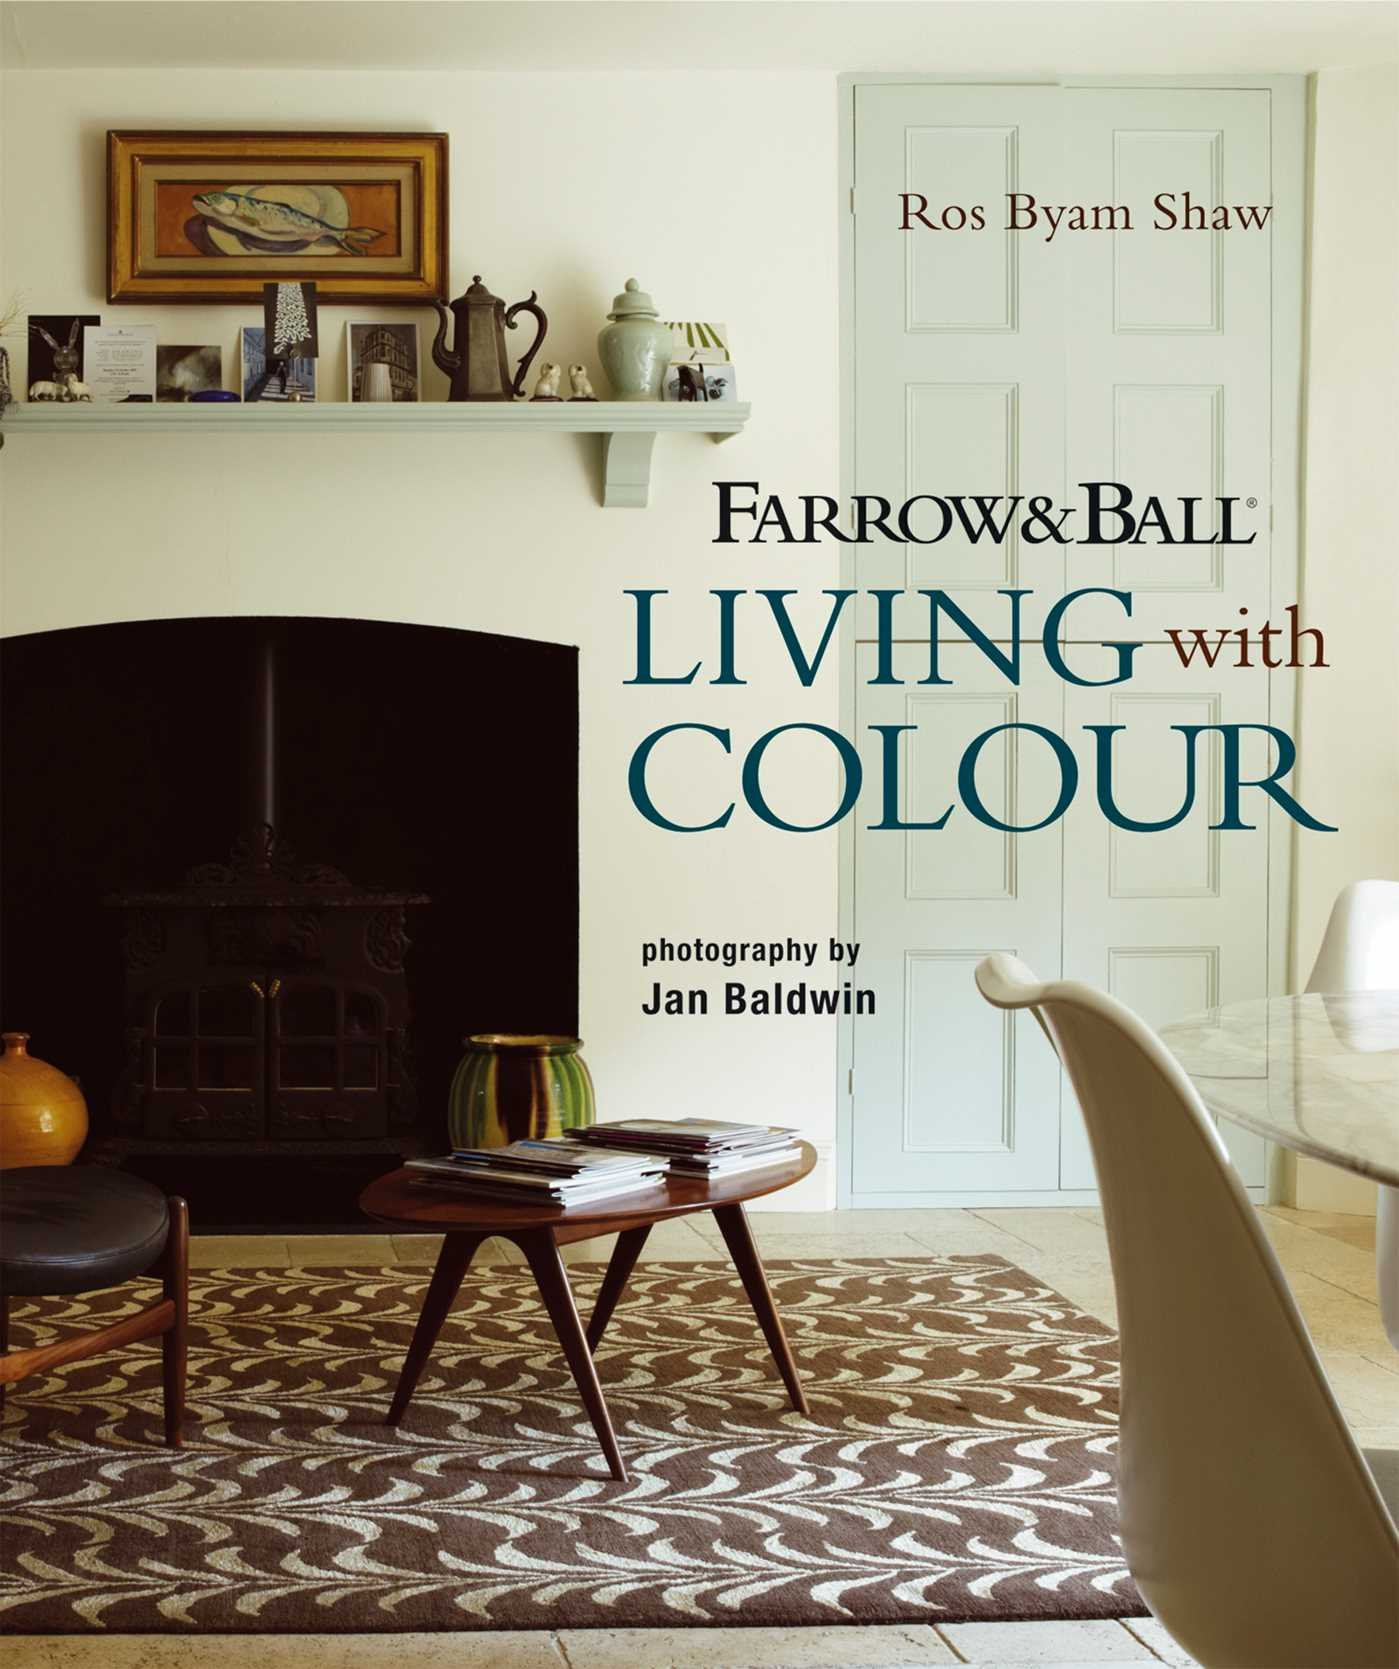 Farrow & Ball Living with Colour: Amazon.co.uk: Ros Byam Shaw ...